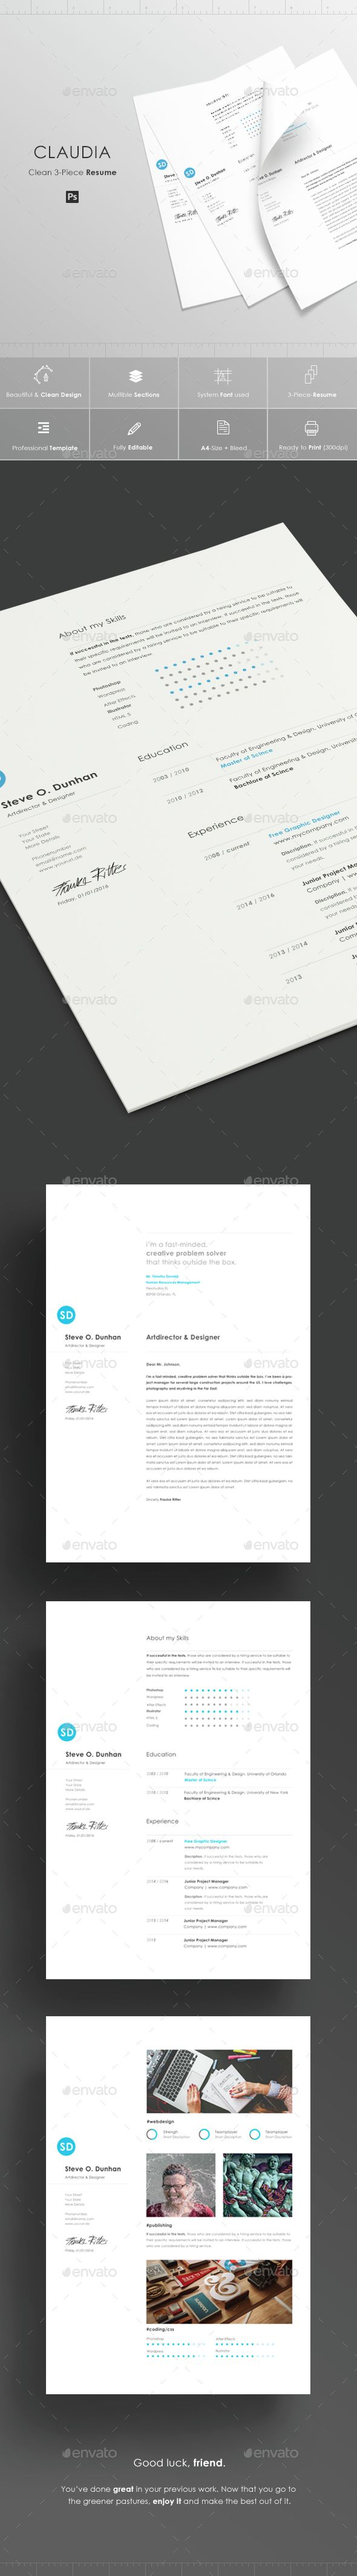 Buy make it simple resume